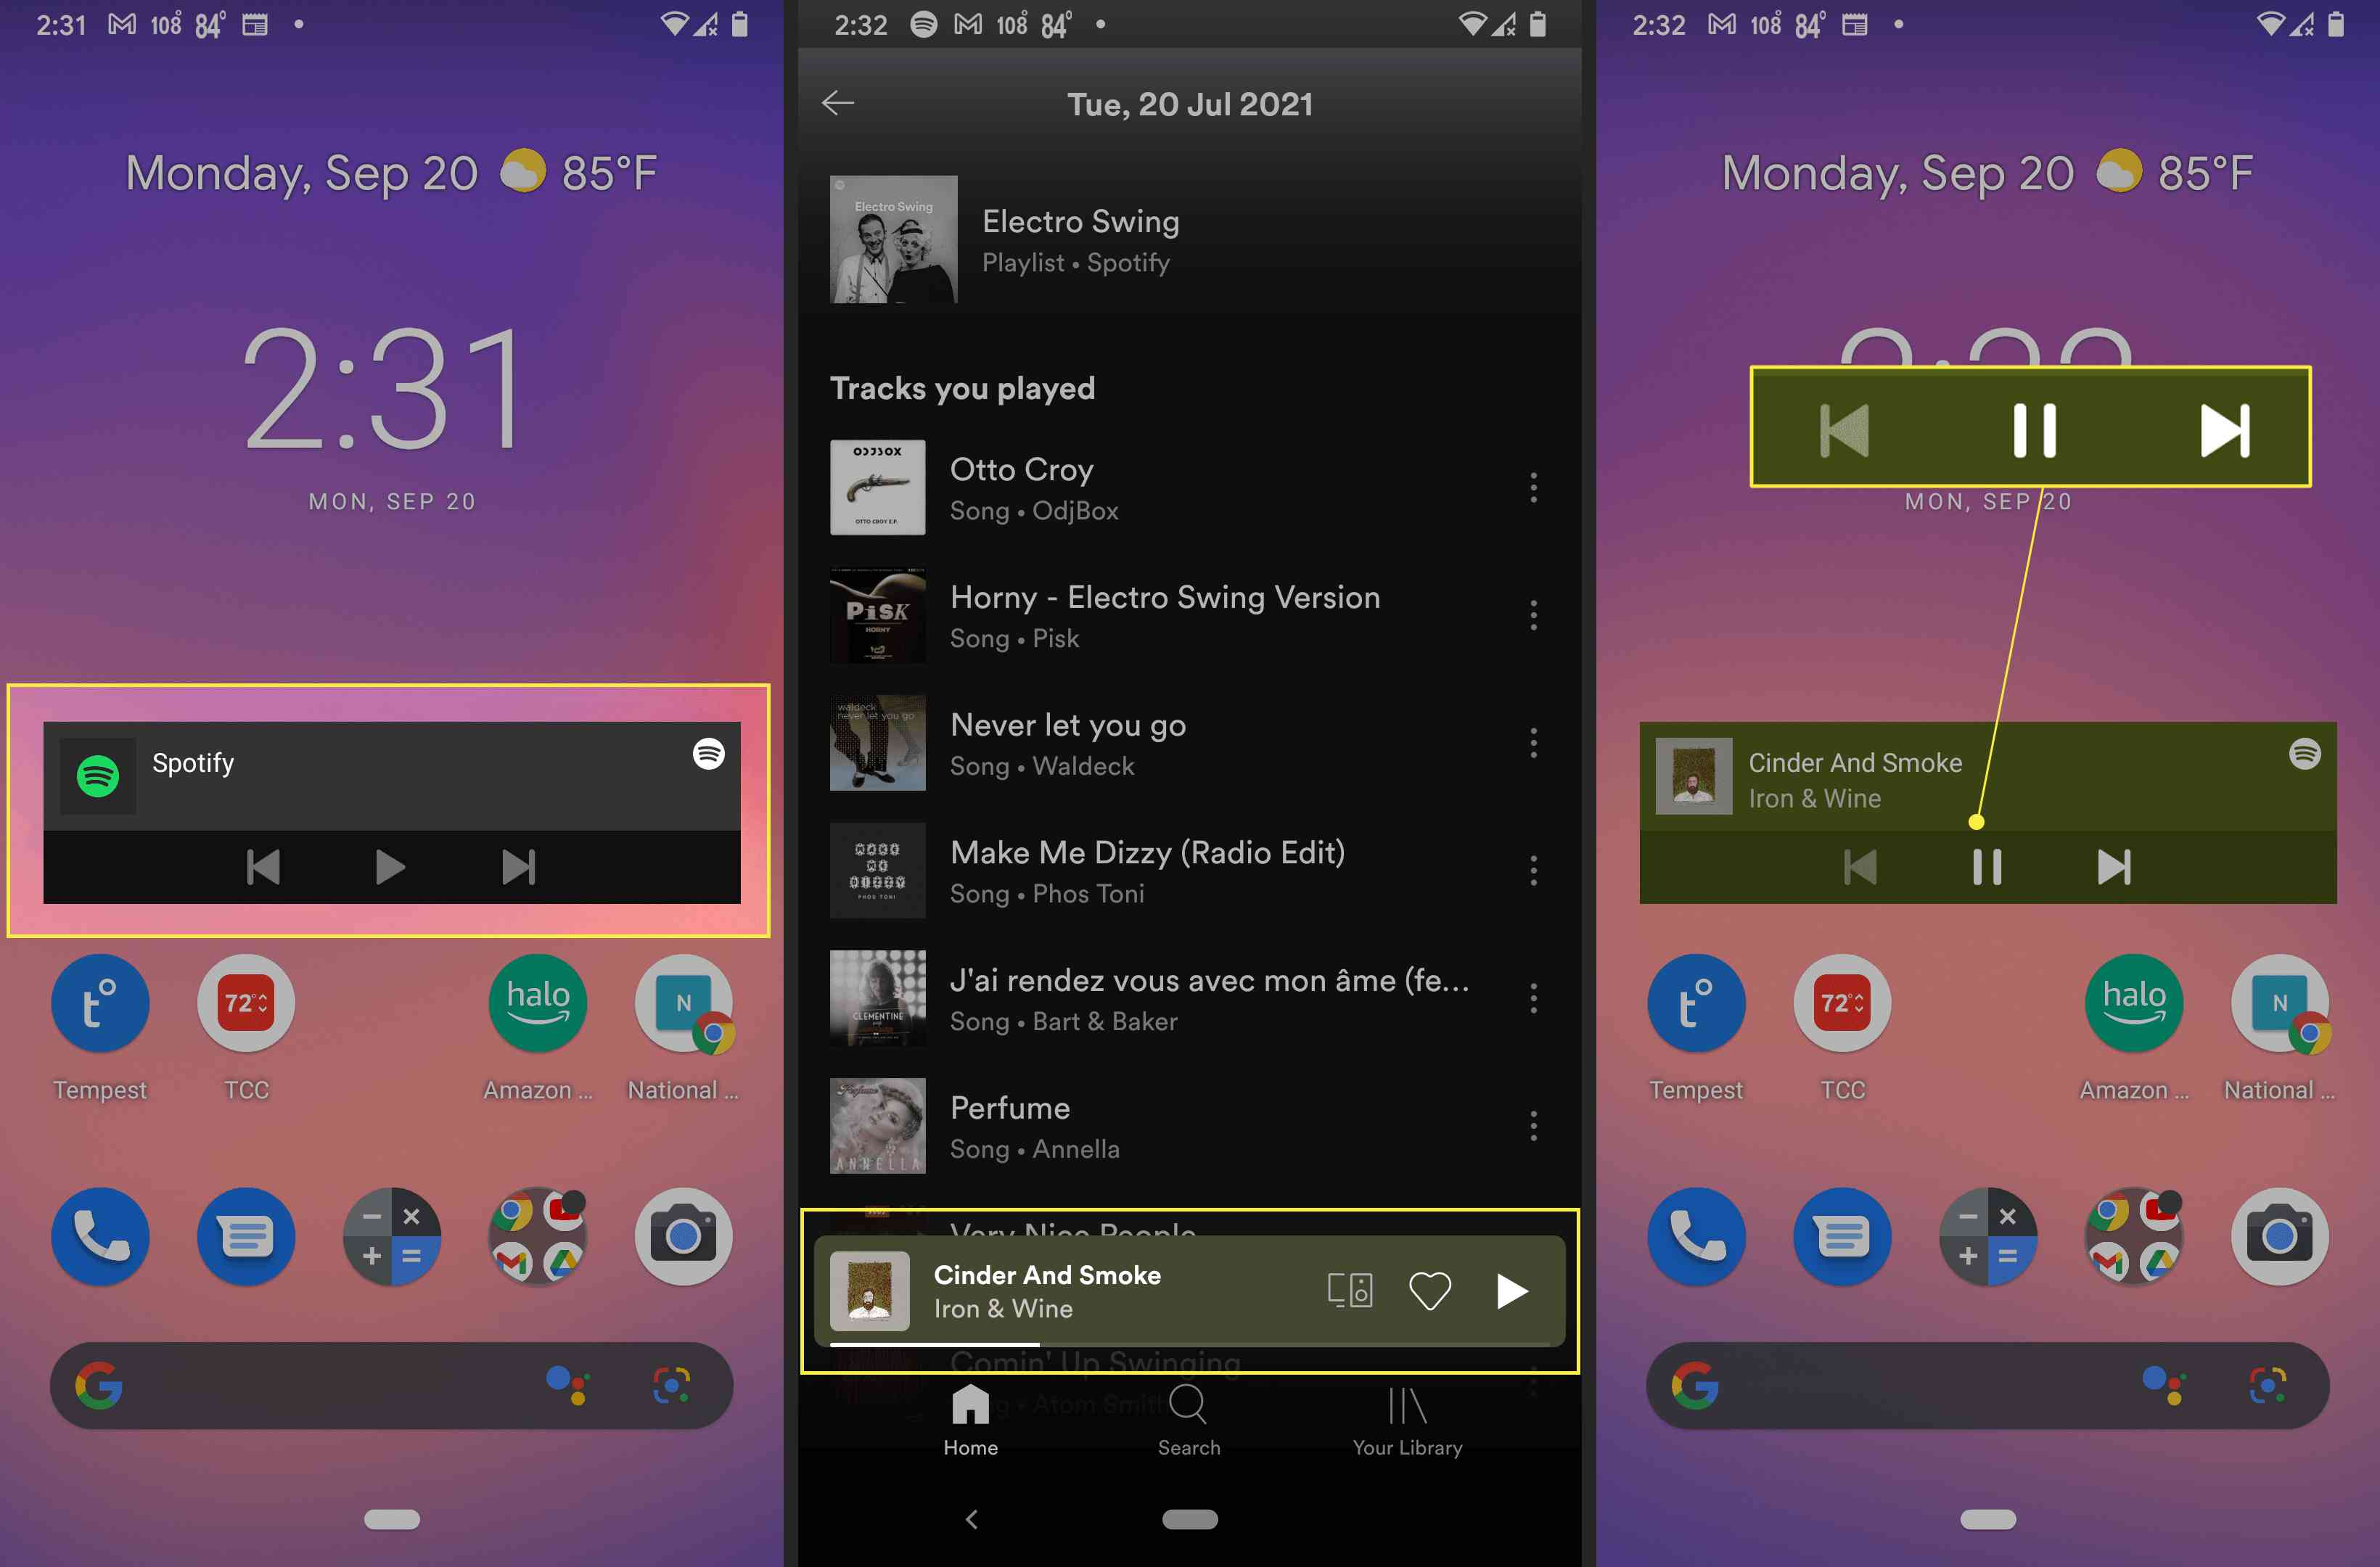 Android with Spotify widget highlighted, Spotify song and play button highlighted, and playback controls on widget highlighted